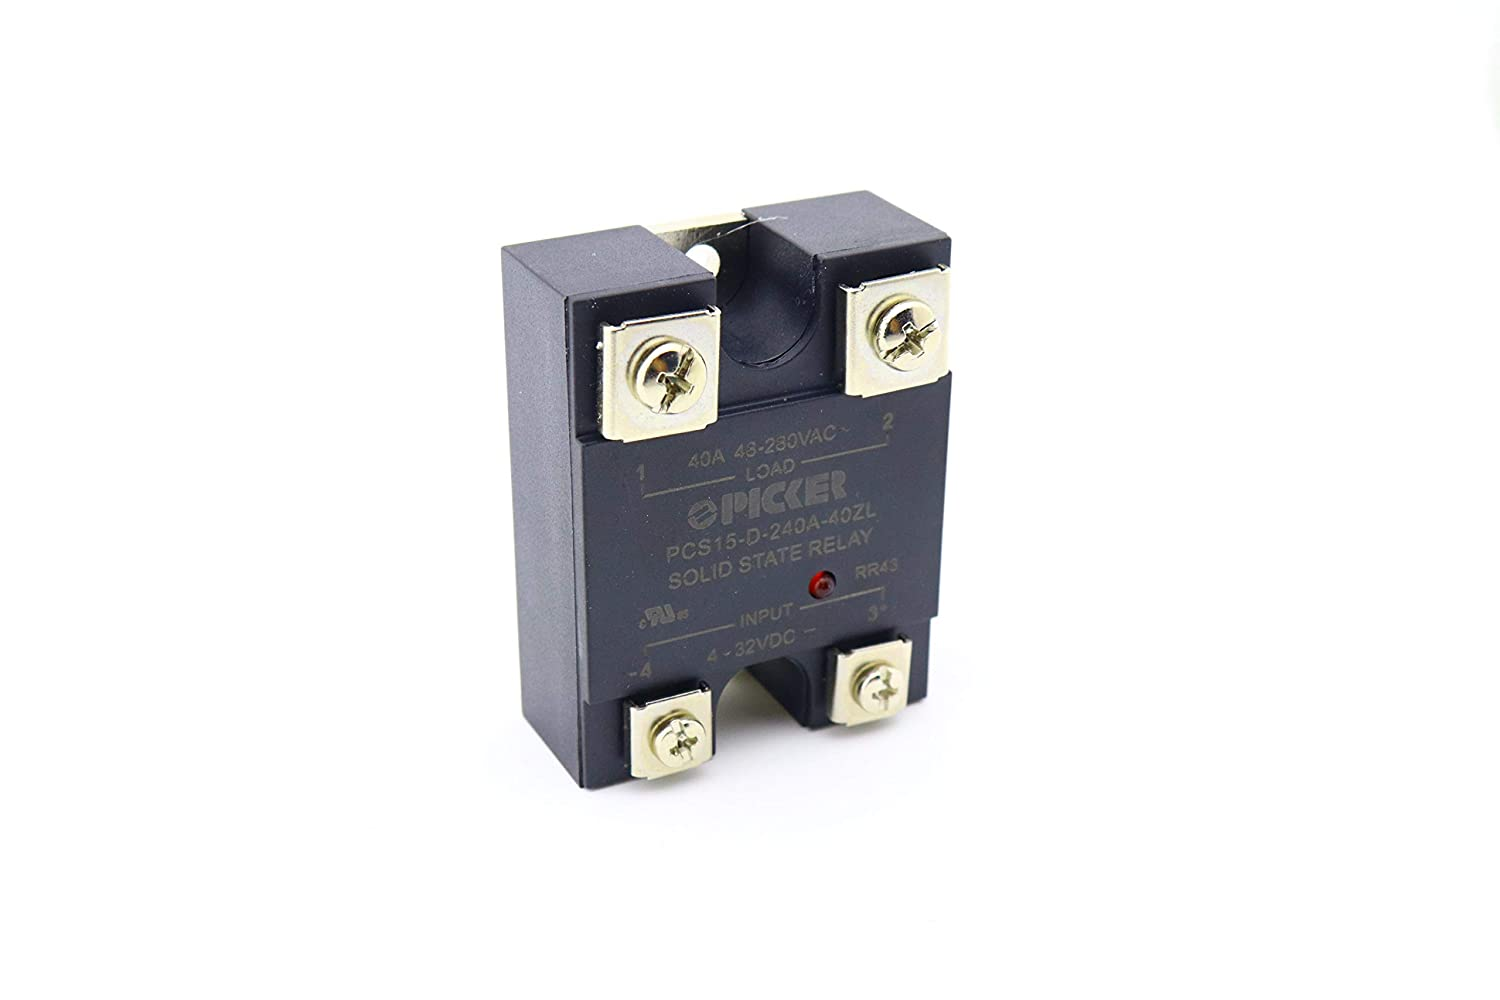 Pcs15 D 240a 40zl 40 Amp 48 280 Vac Zero Crossing Ul Rated 4 Solid State Relay 230vac 32 Vdc Input Hockey Puck With Led Cross Carlo Gavazzi Rm1a23d25